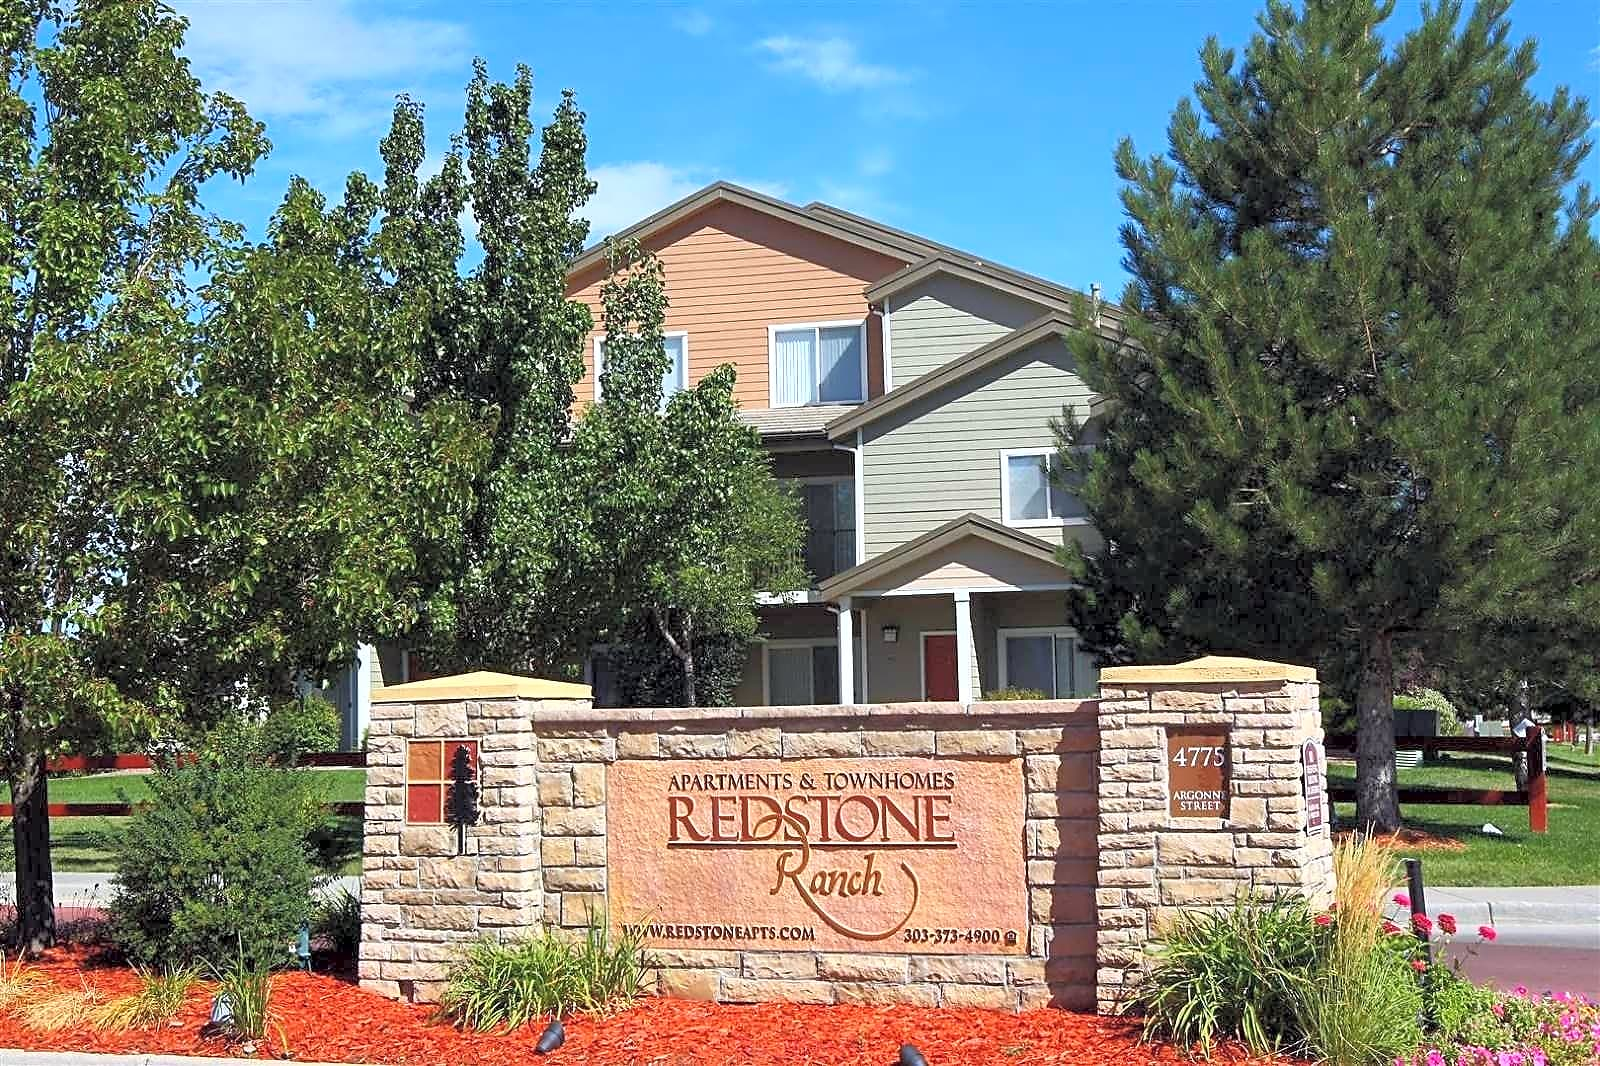 Redstone Ranch for rent in Denver